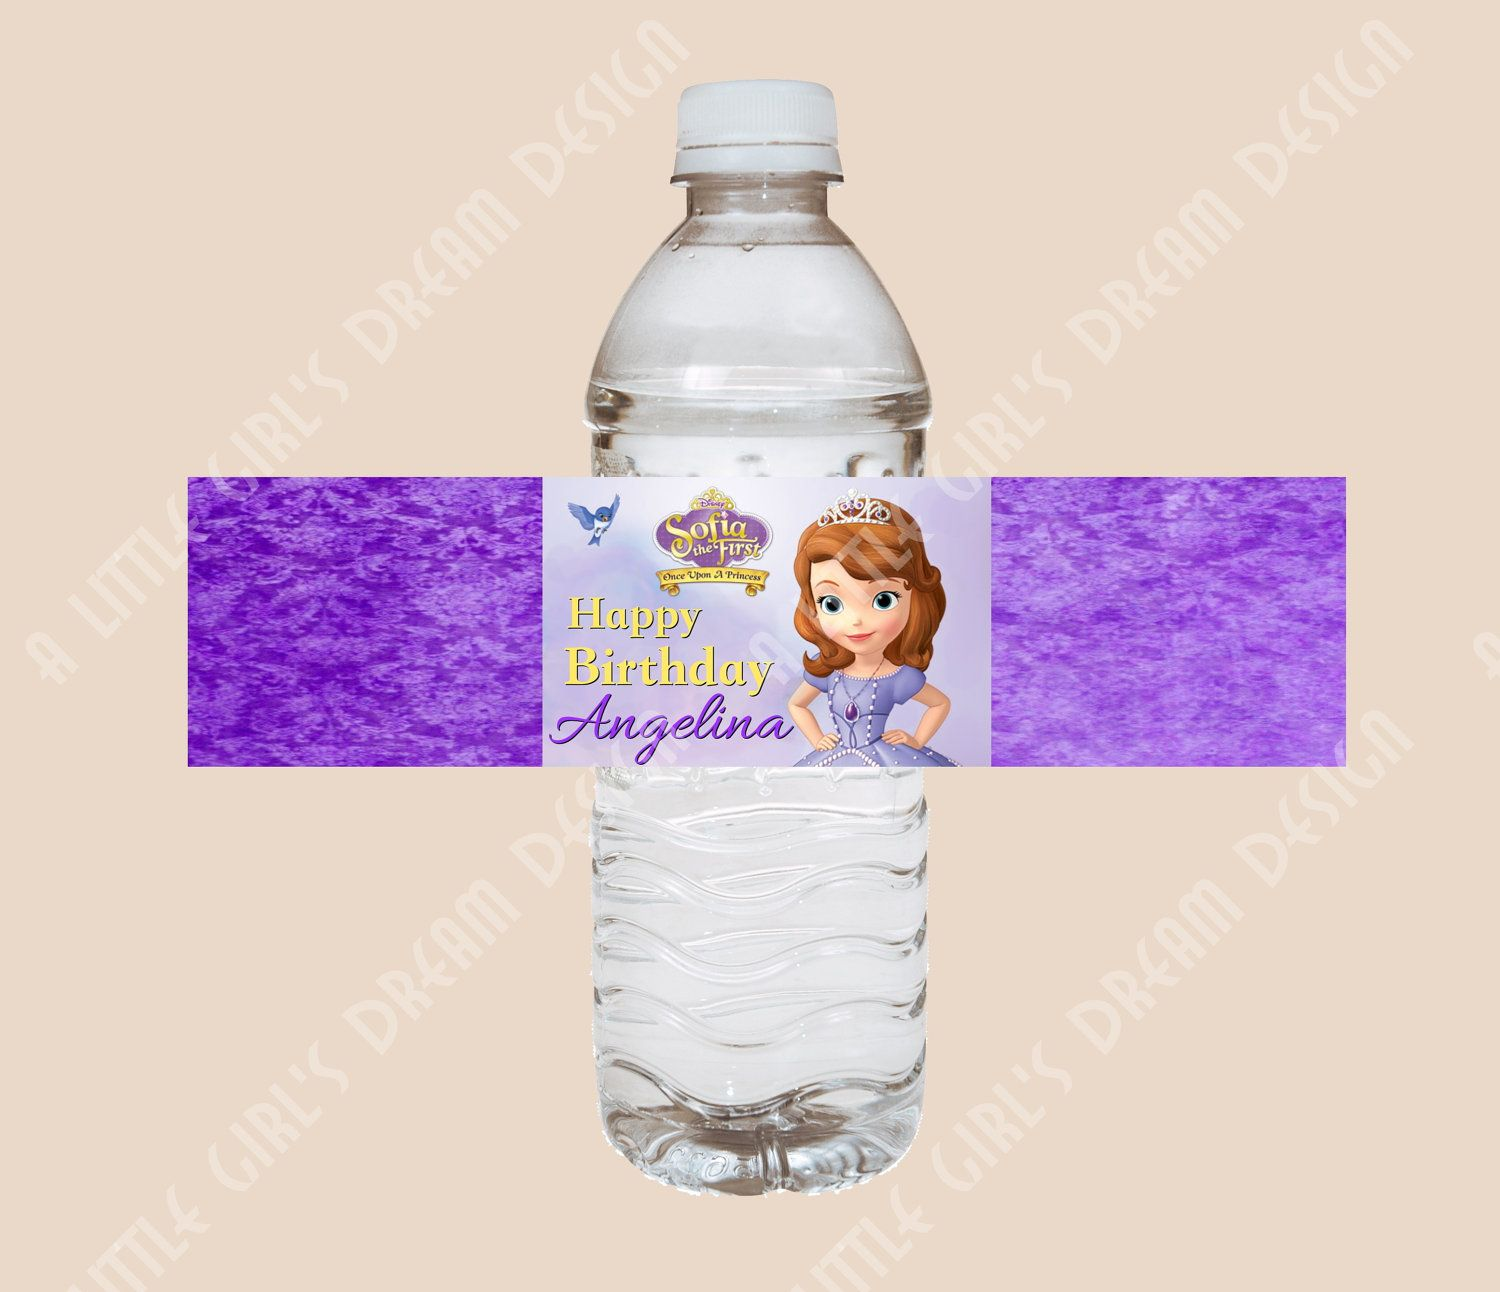 Sofia the First NEW DISNEY PRINCESS Water Bottle Label Birthday Party Custom. $5.00, via Etsy.